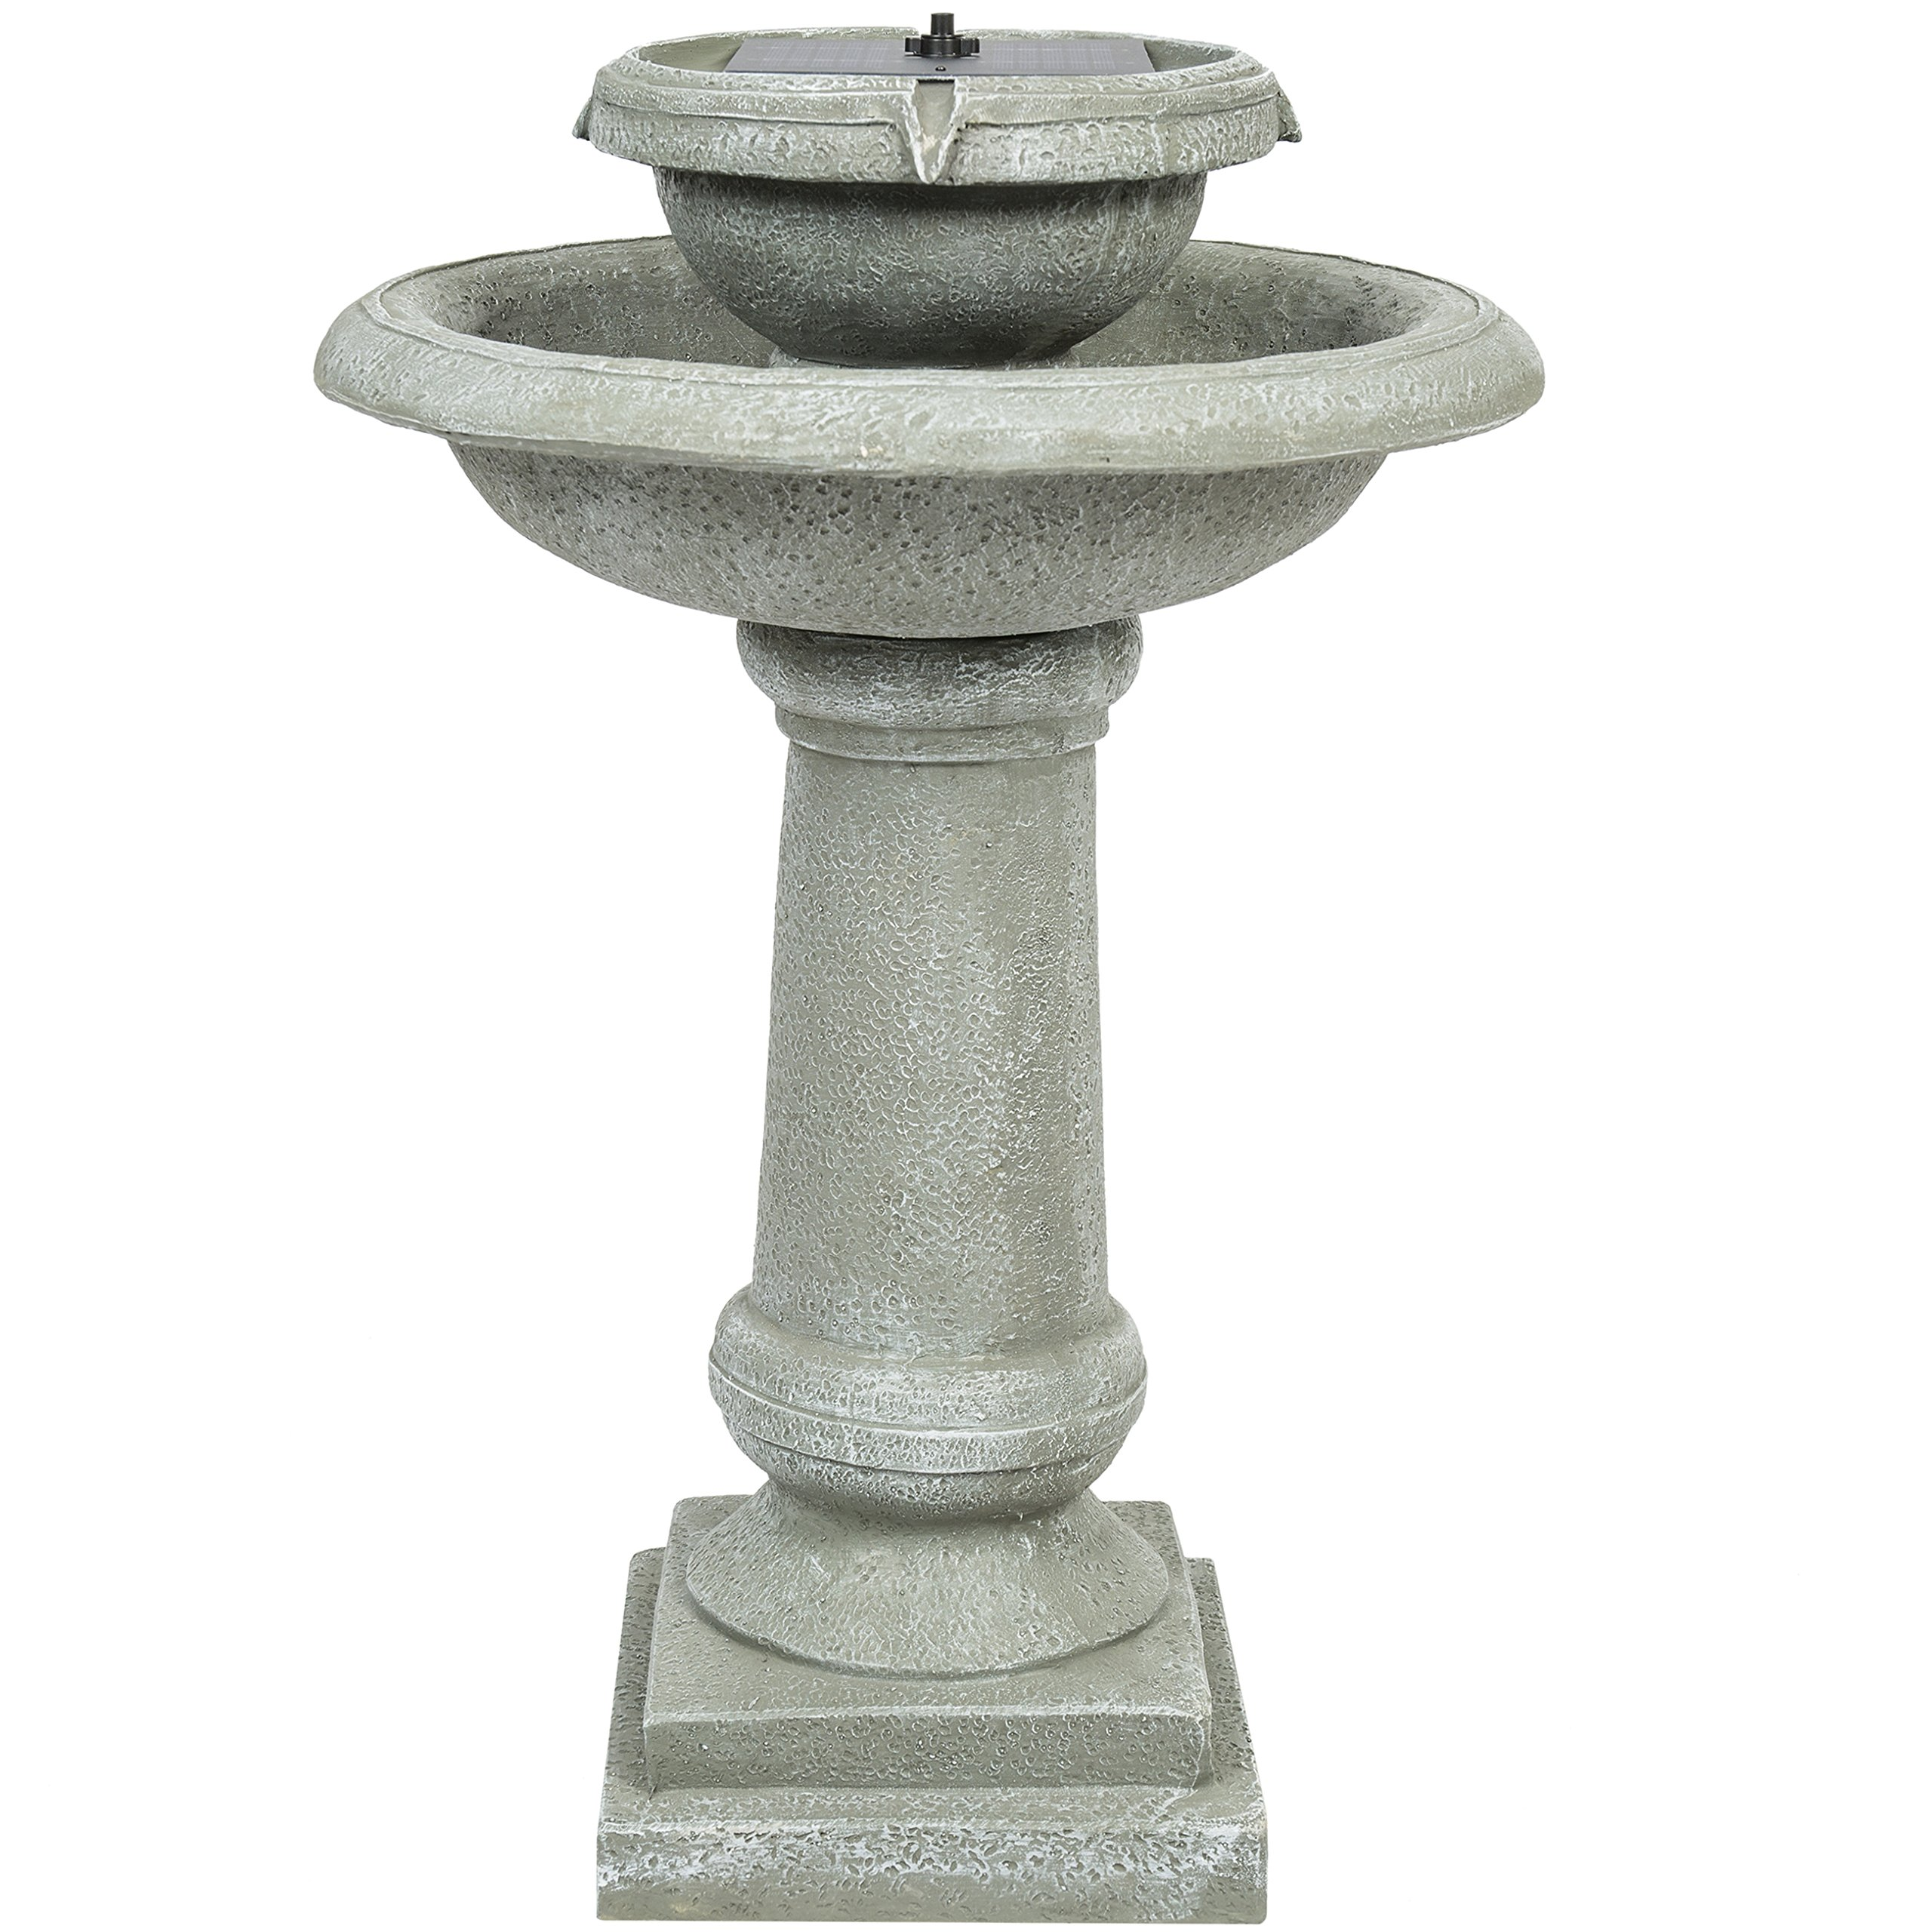 Best Choice Products Solar Power 2 Tier Weathered Stone Bird Bath Fountain Gray by Best Choice Products